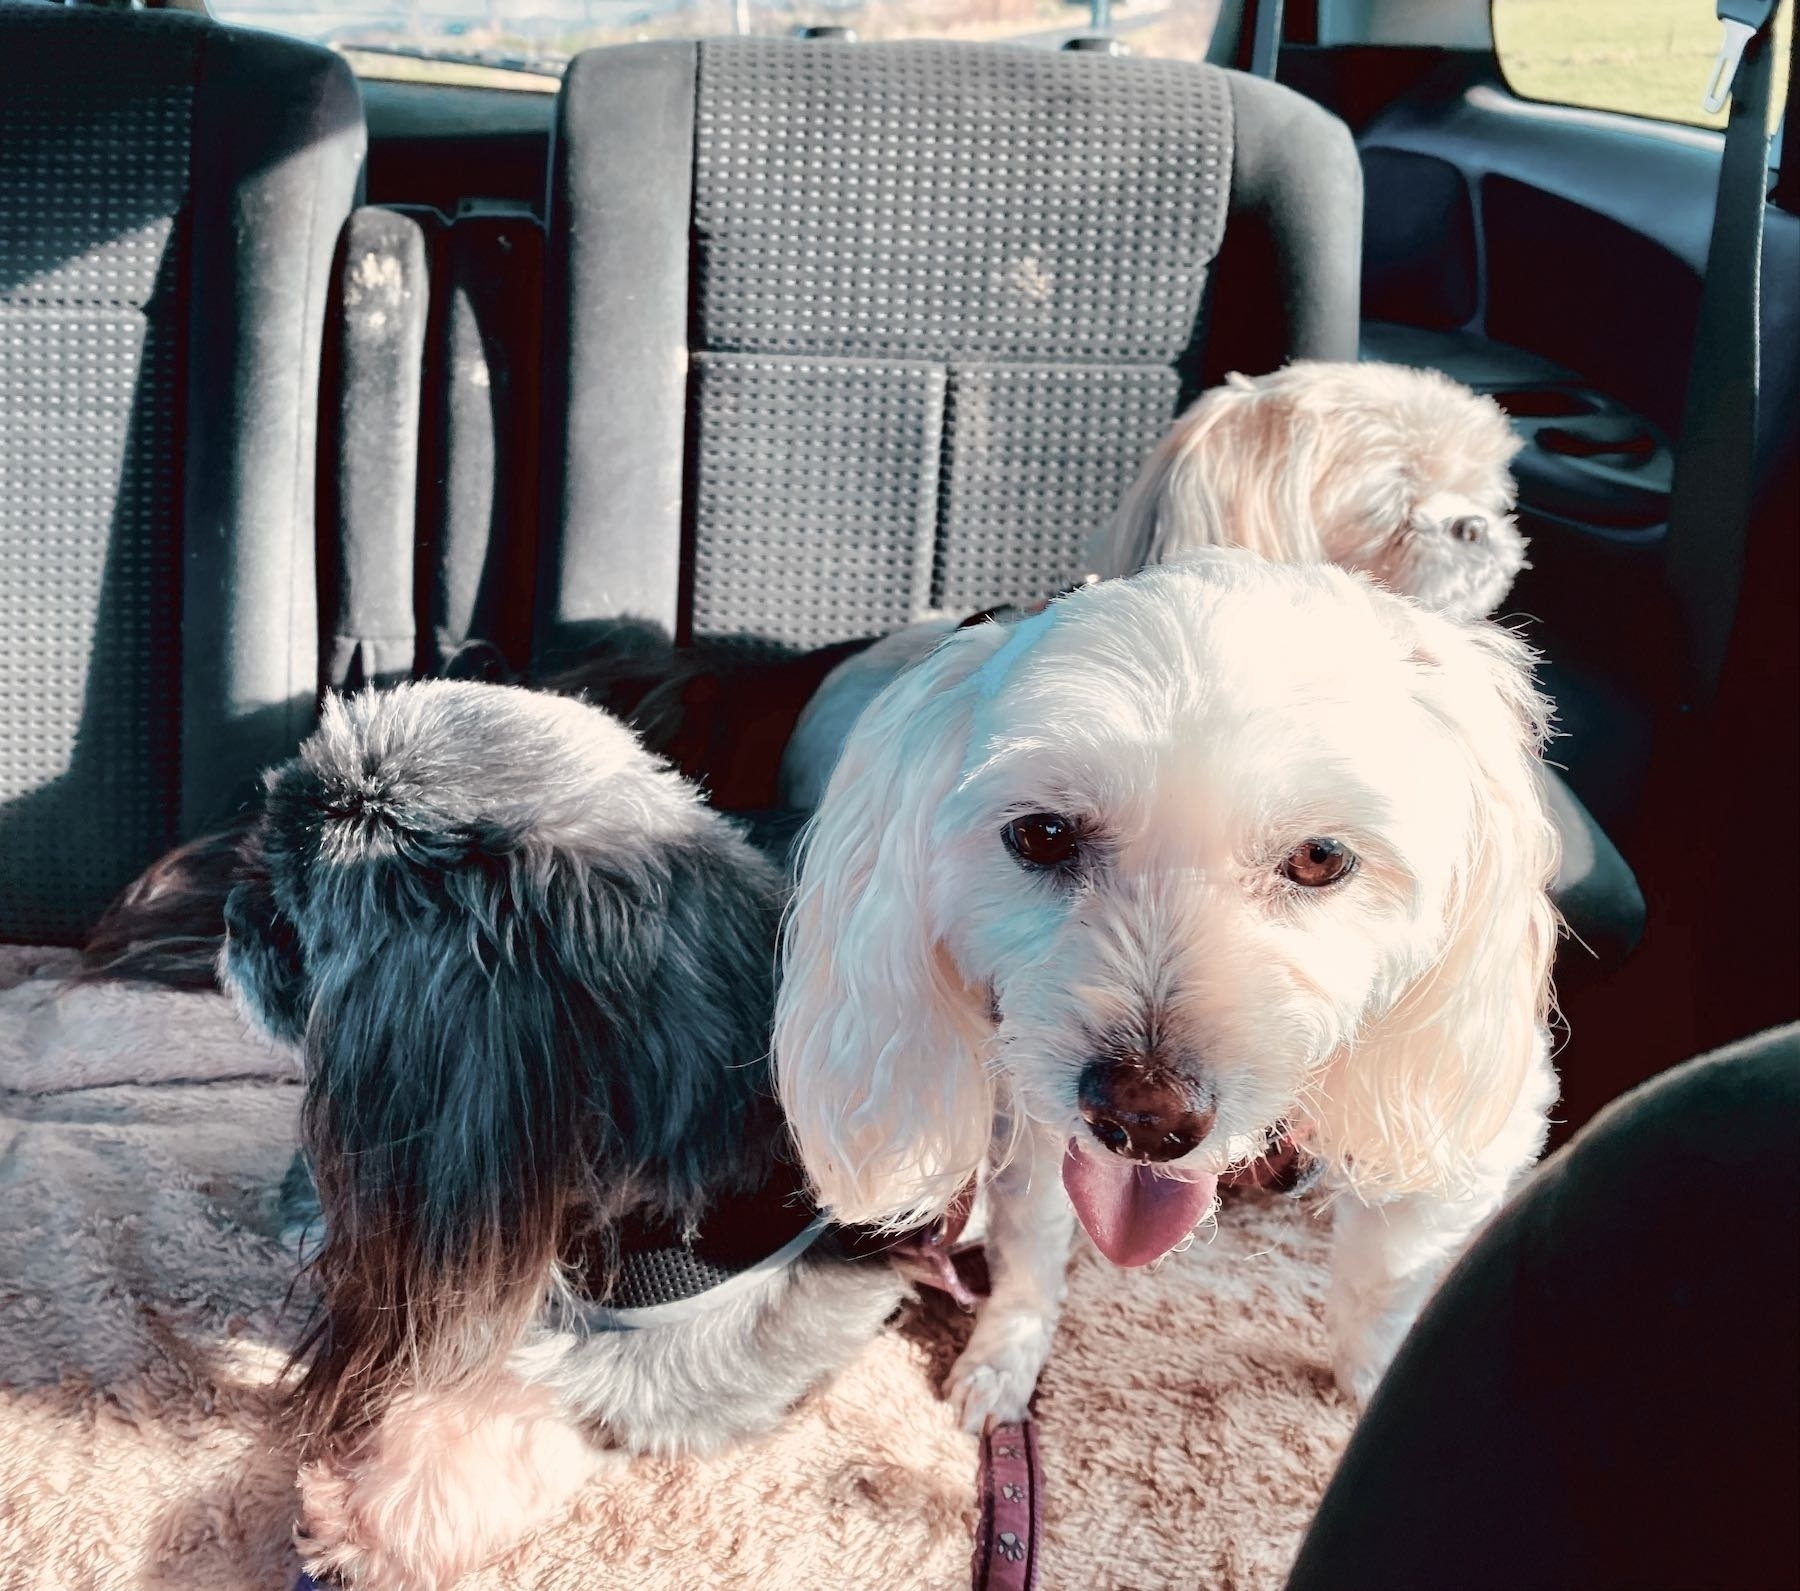 3 small dogs crammed into a small space in a car.